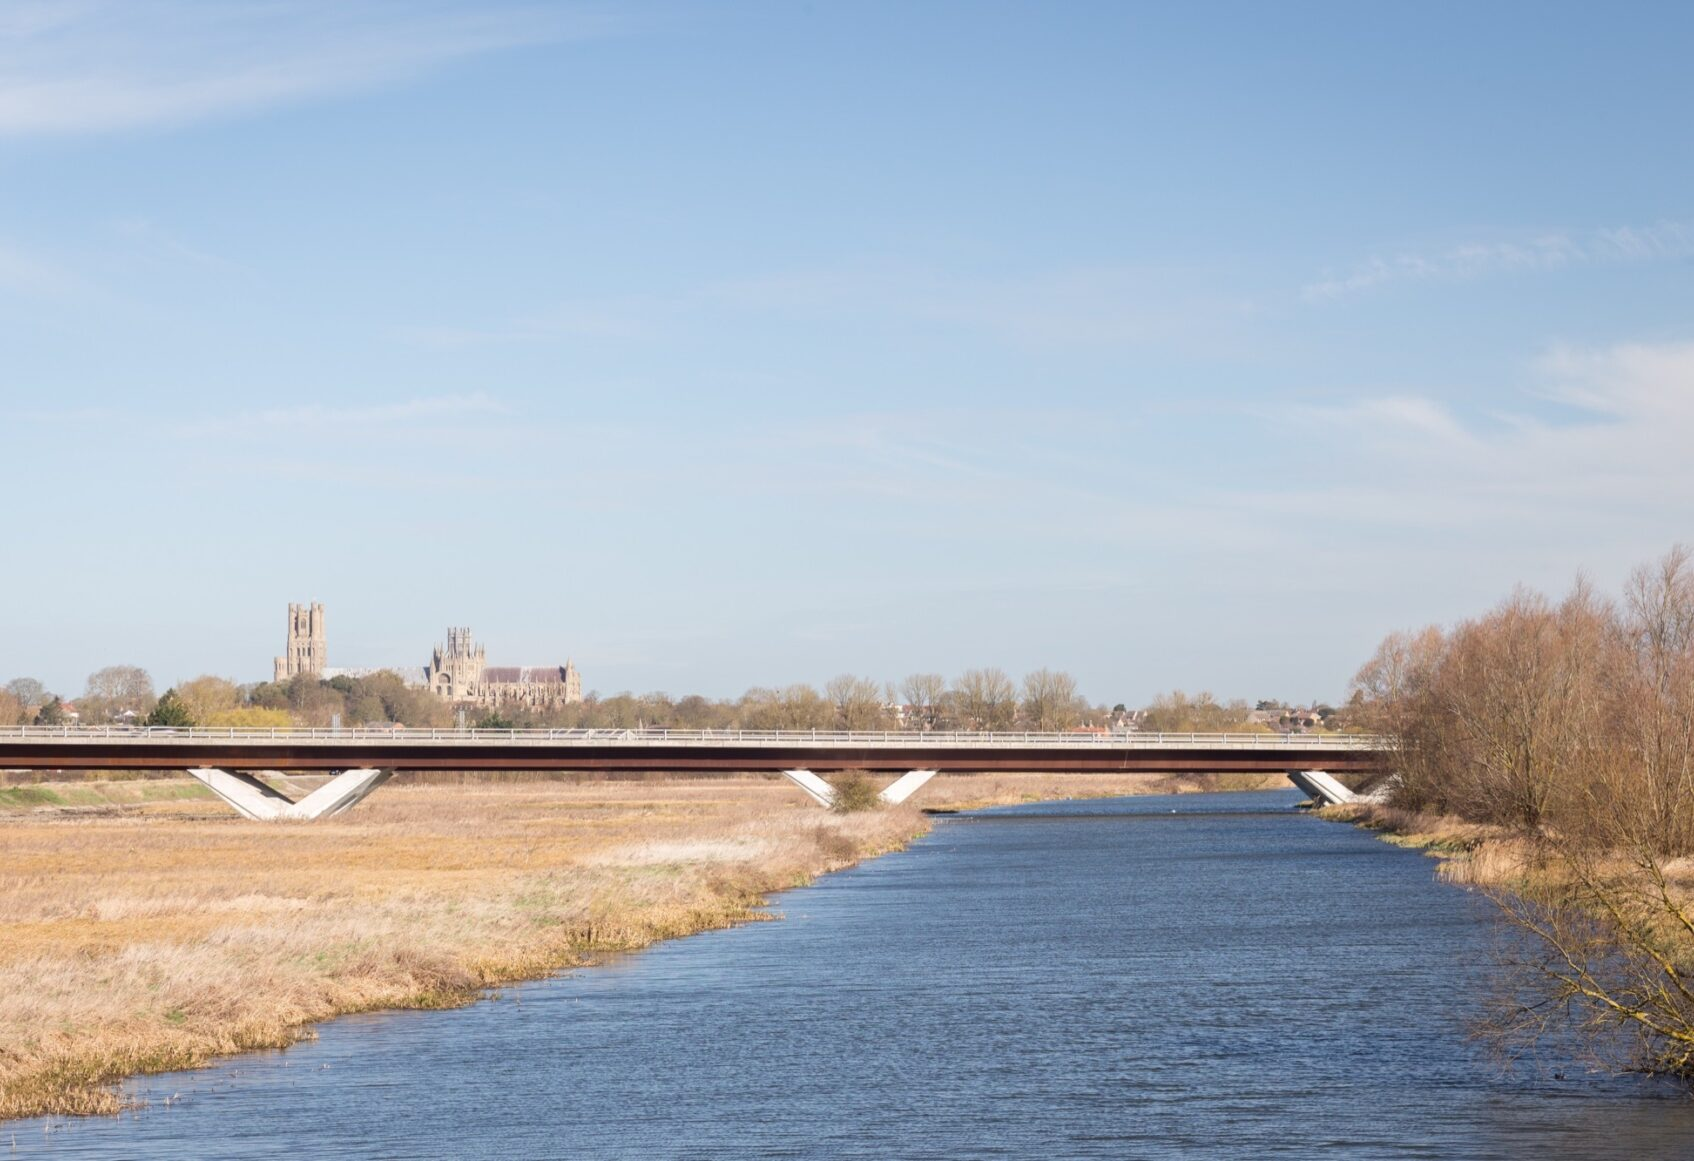 Down river view looking at Ely bypass with Ely Cathedral in the distant behind it